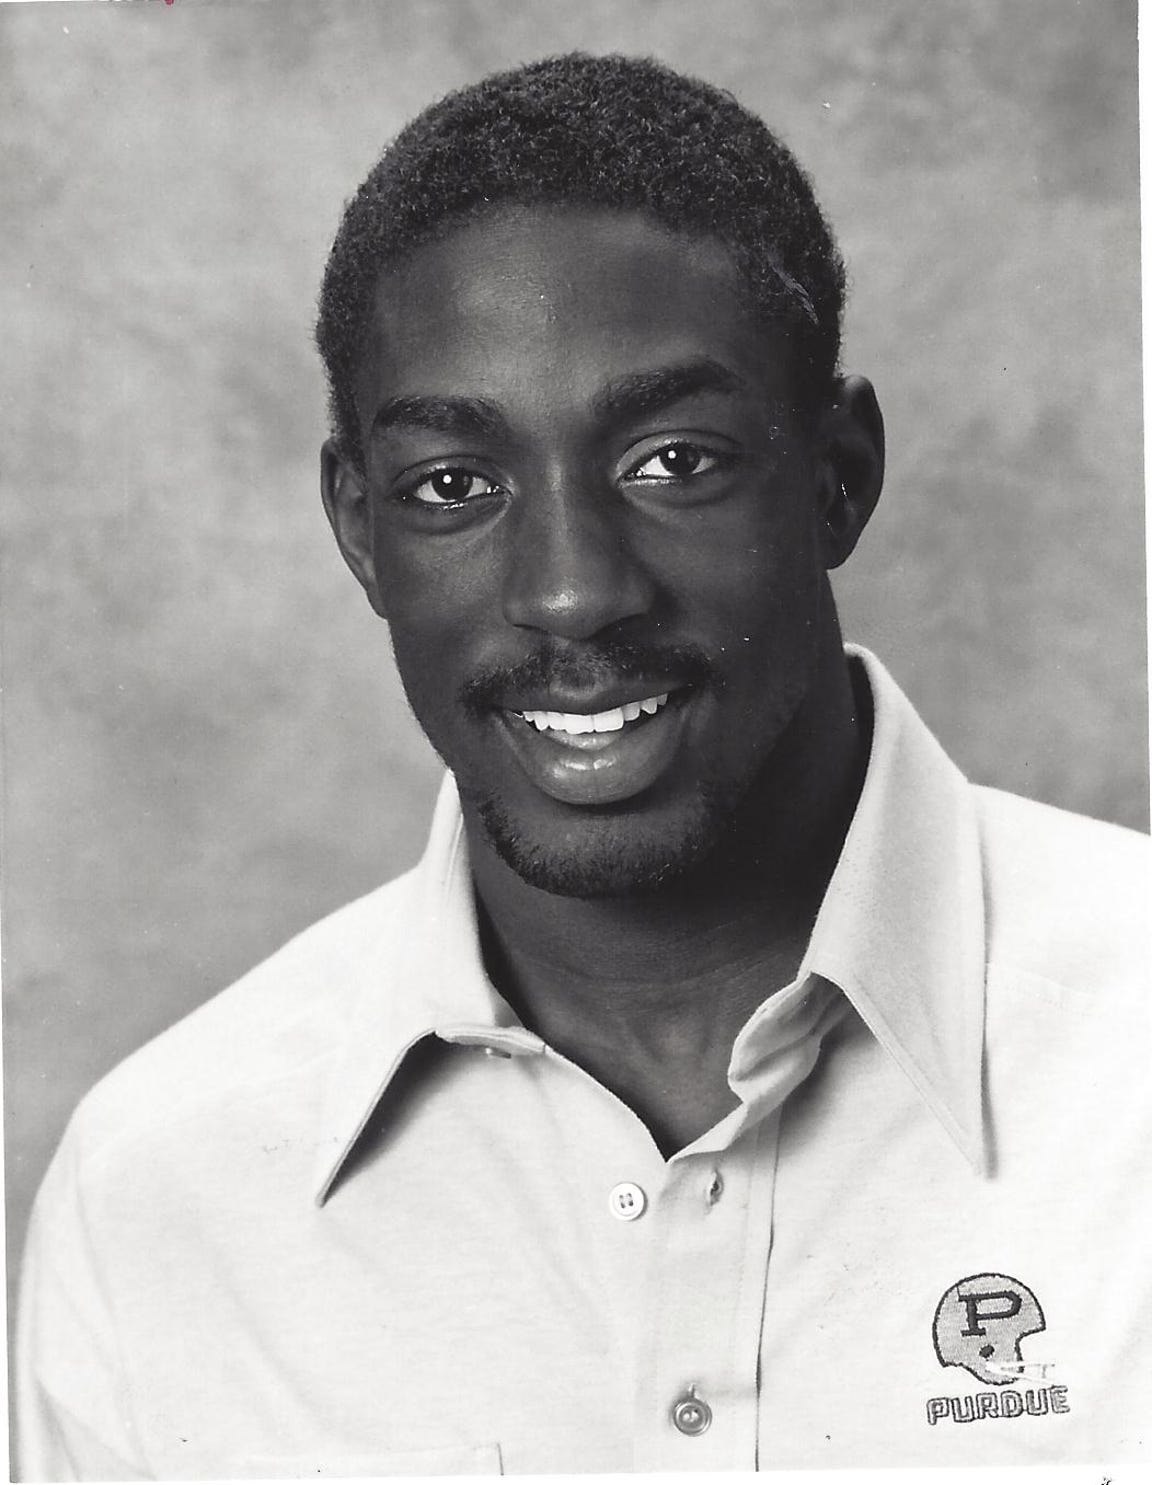 Cris Dishman was a standout cornerback for the Boilermakers before embarking on a long NFL career.